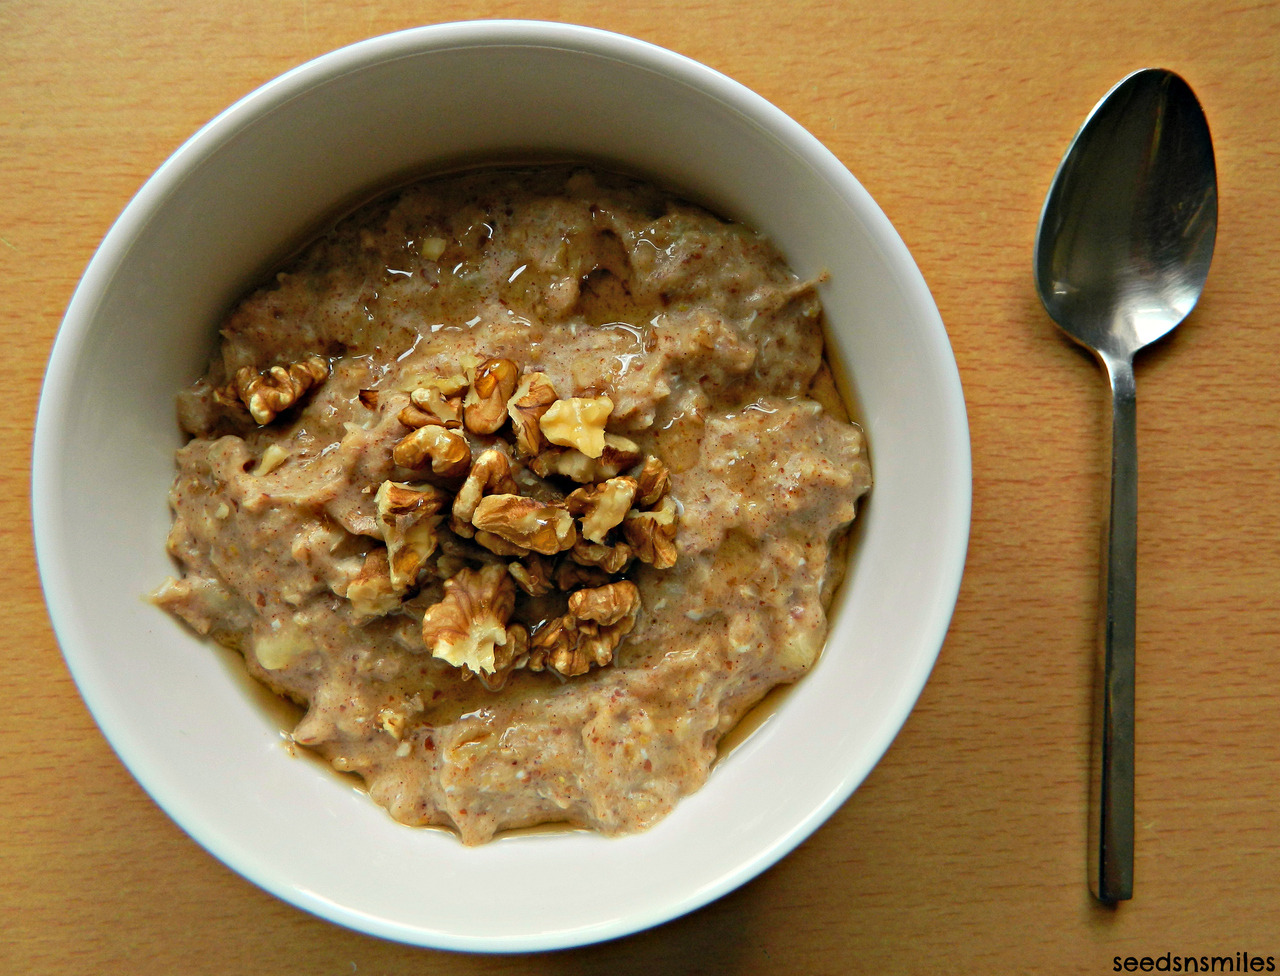 French Toast Oatmeal with Walnuts and Maple Syrup. (recipe can be found here.) To make vegan, replace the egg with 2 or 3 tbsp of plain or vanilla soy yoghurt. It makes it just as creamy! I've never used silken tofu before, but I think that might give the same effect, too.